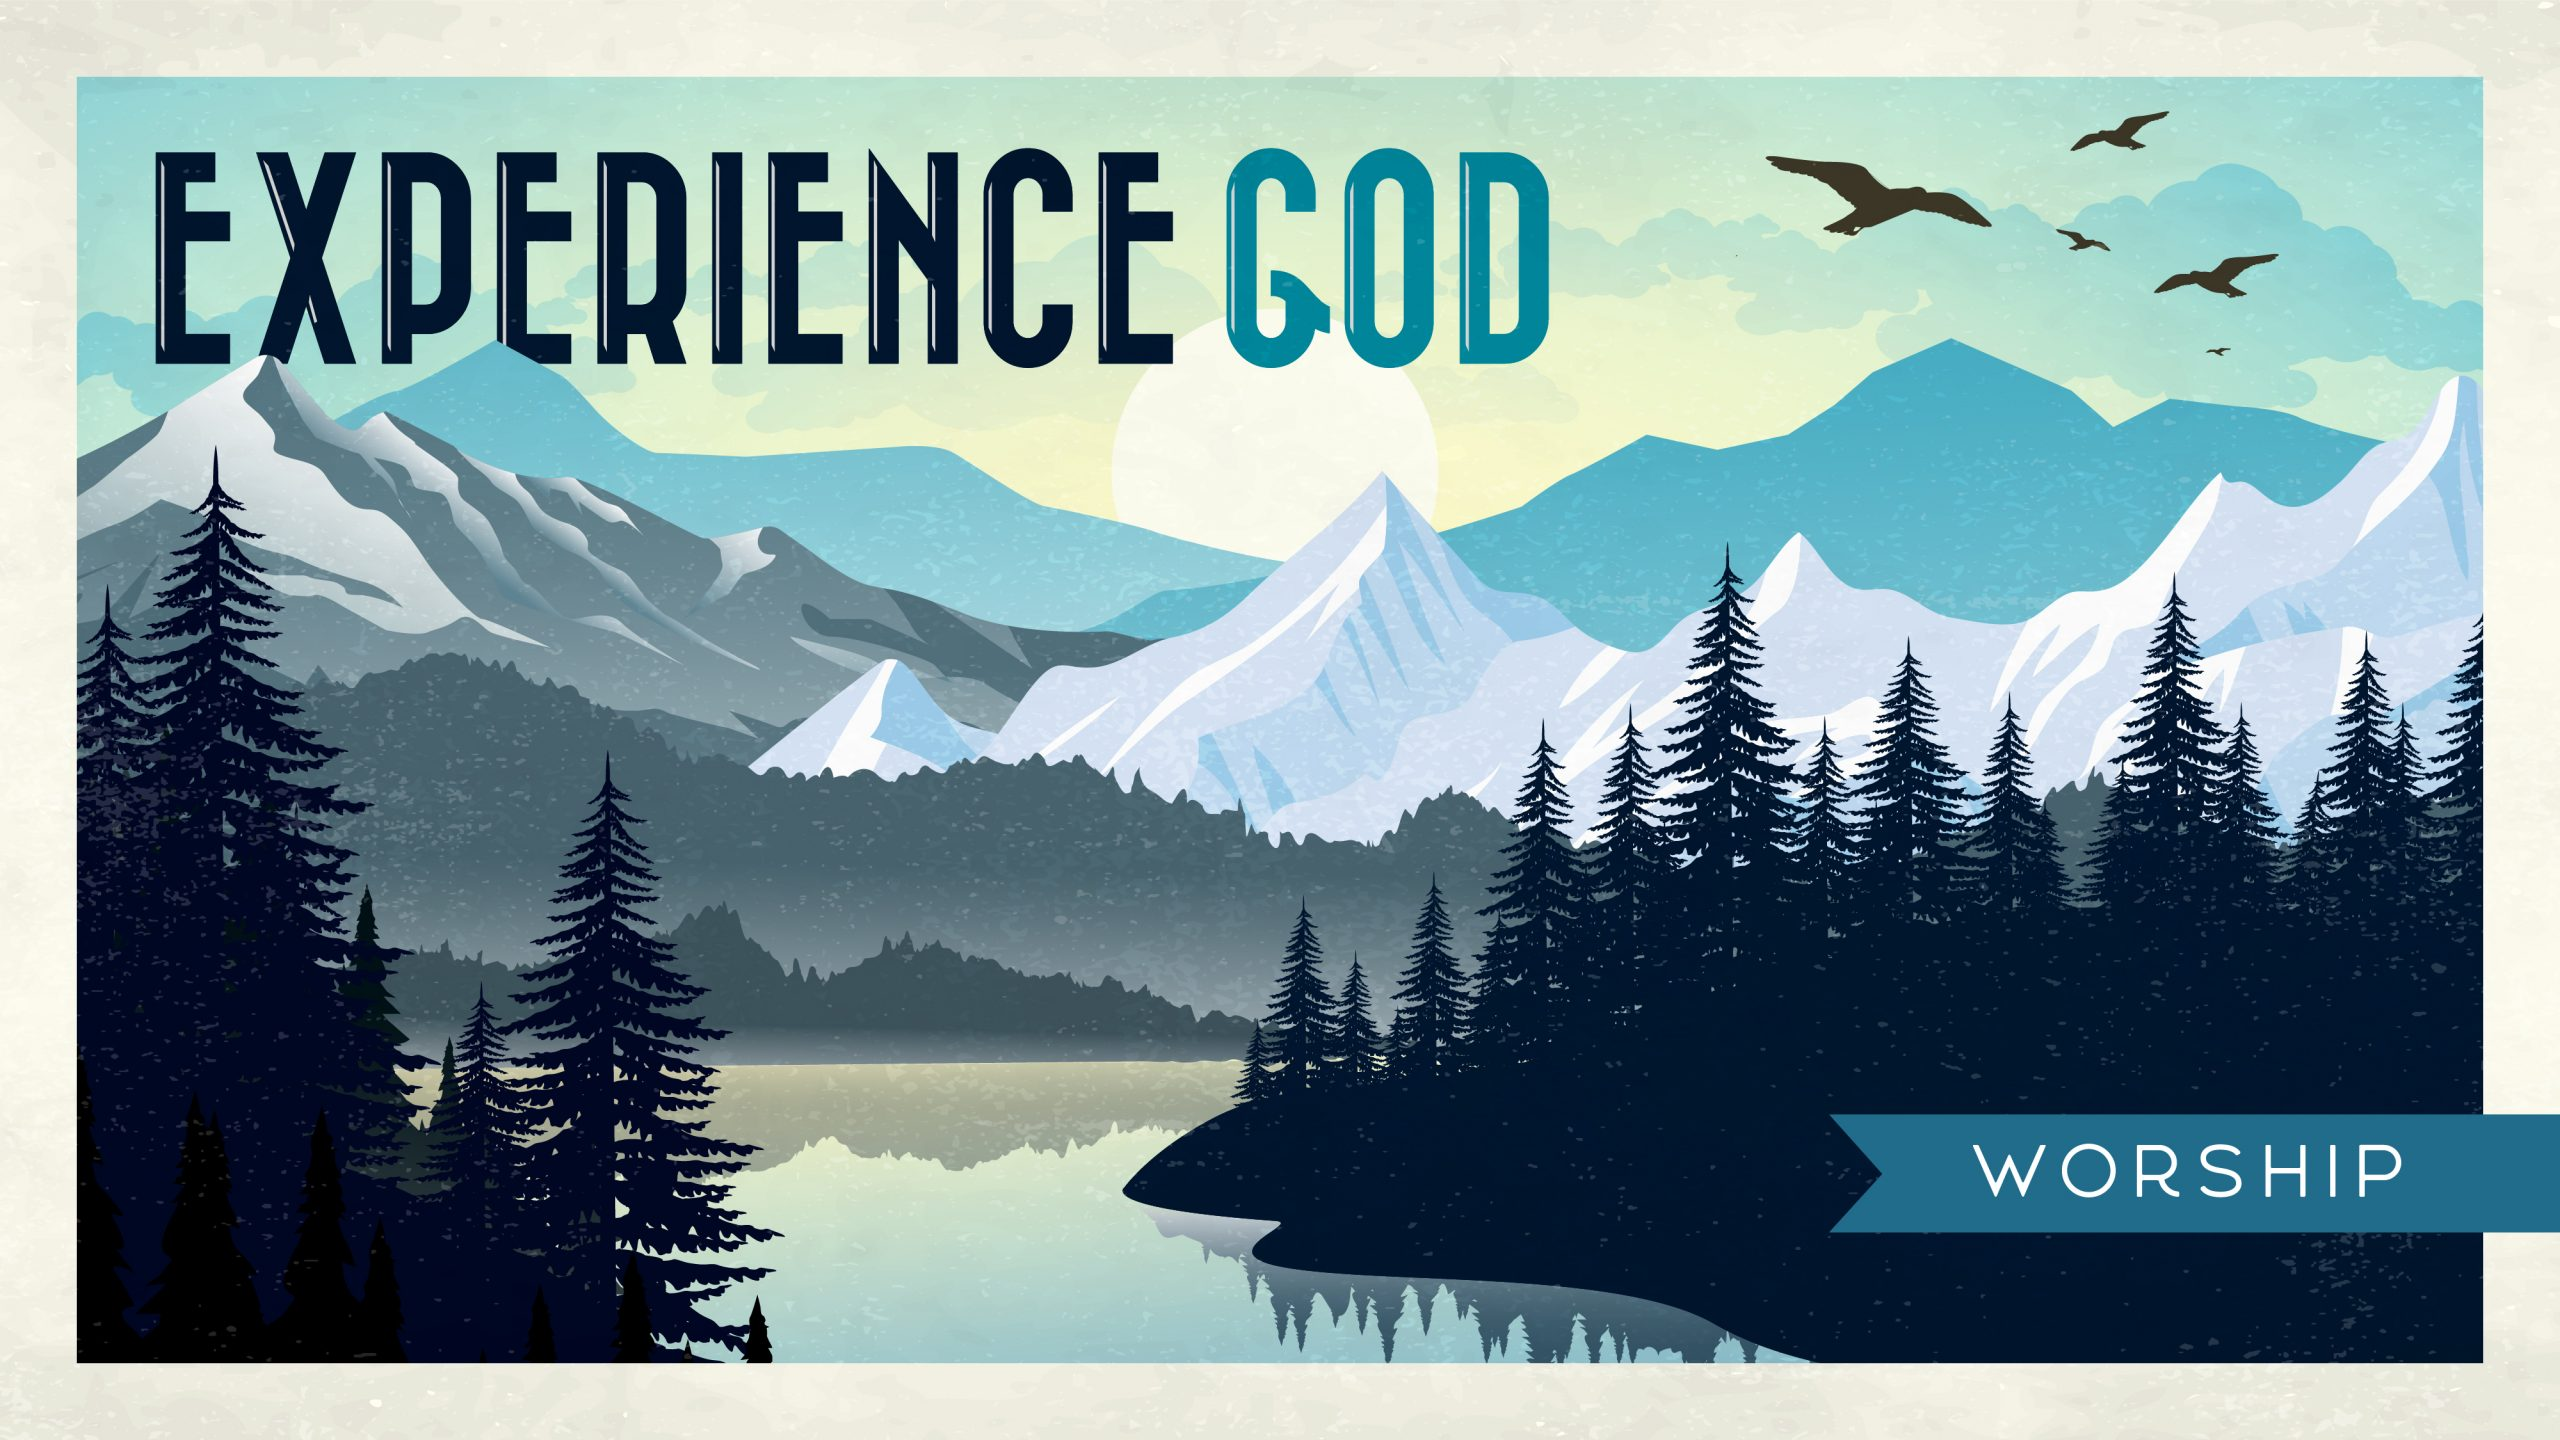 Experience God: The Power of Worship